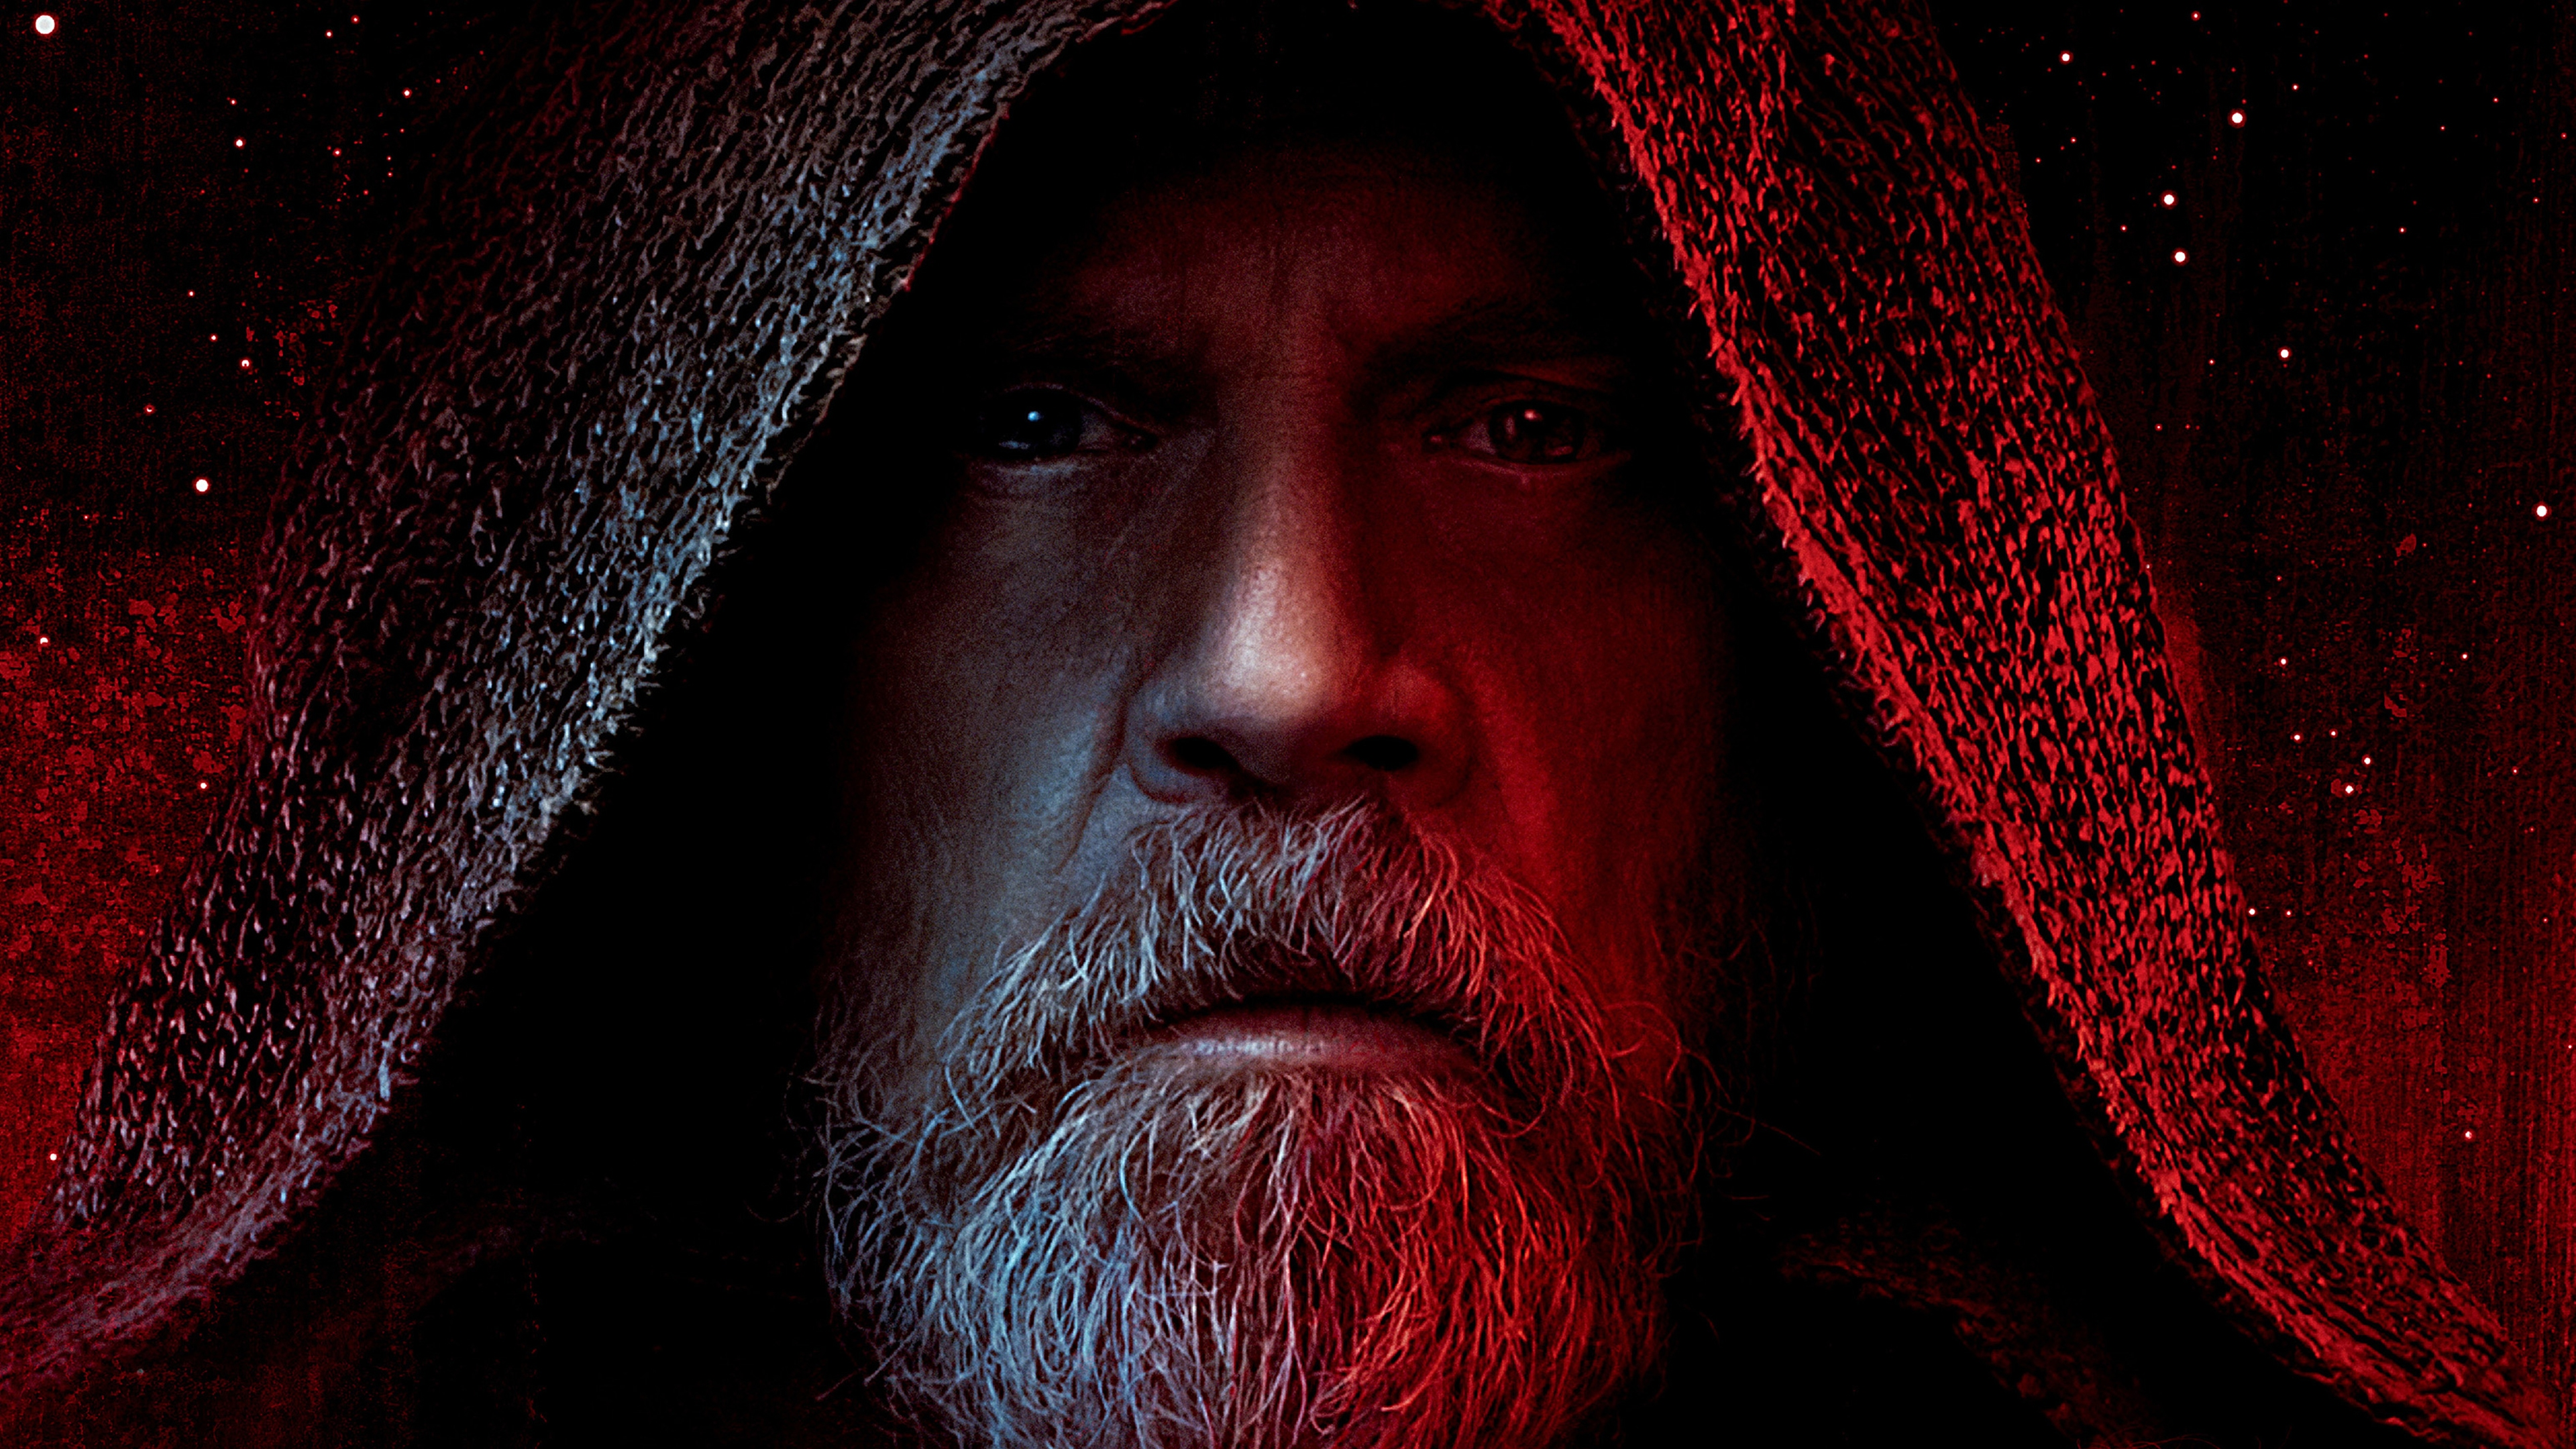 Luke Skywalker 4k Ultra Hd Wallpaper Hintergrund 3840x2160 Id